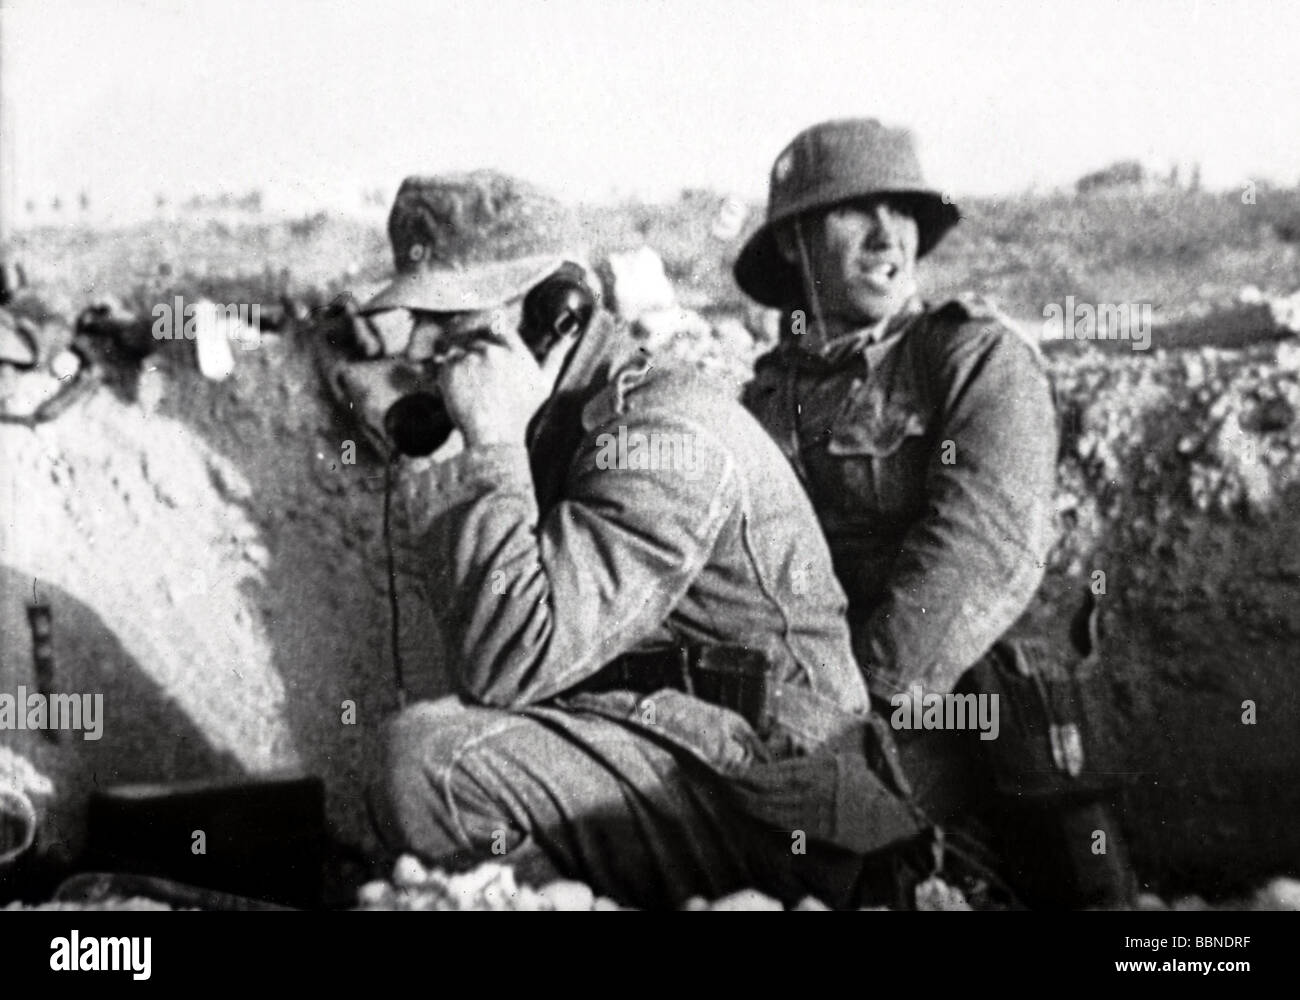 events, Second World War / WWII, North Africa, German forward post with field telephone, circa 1941, Additional - Stock Image